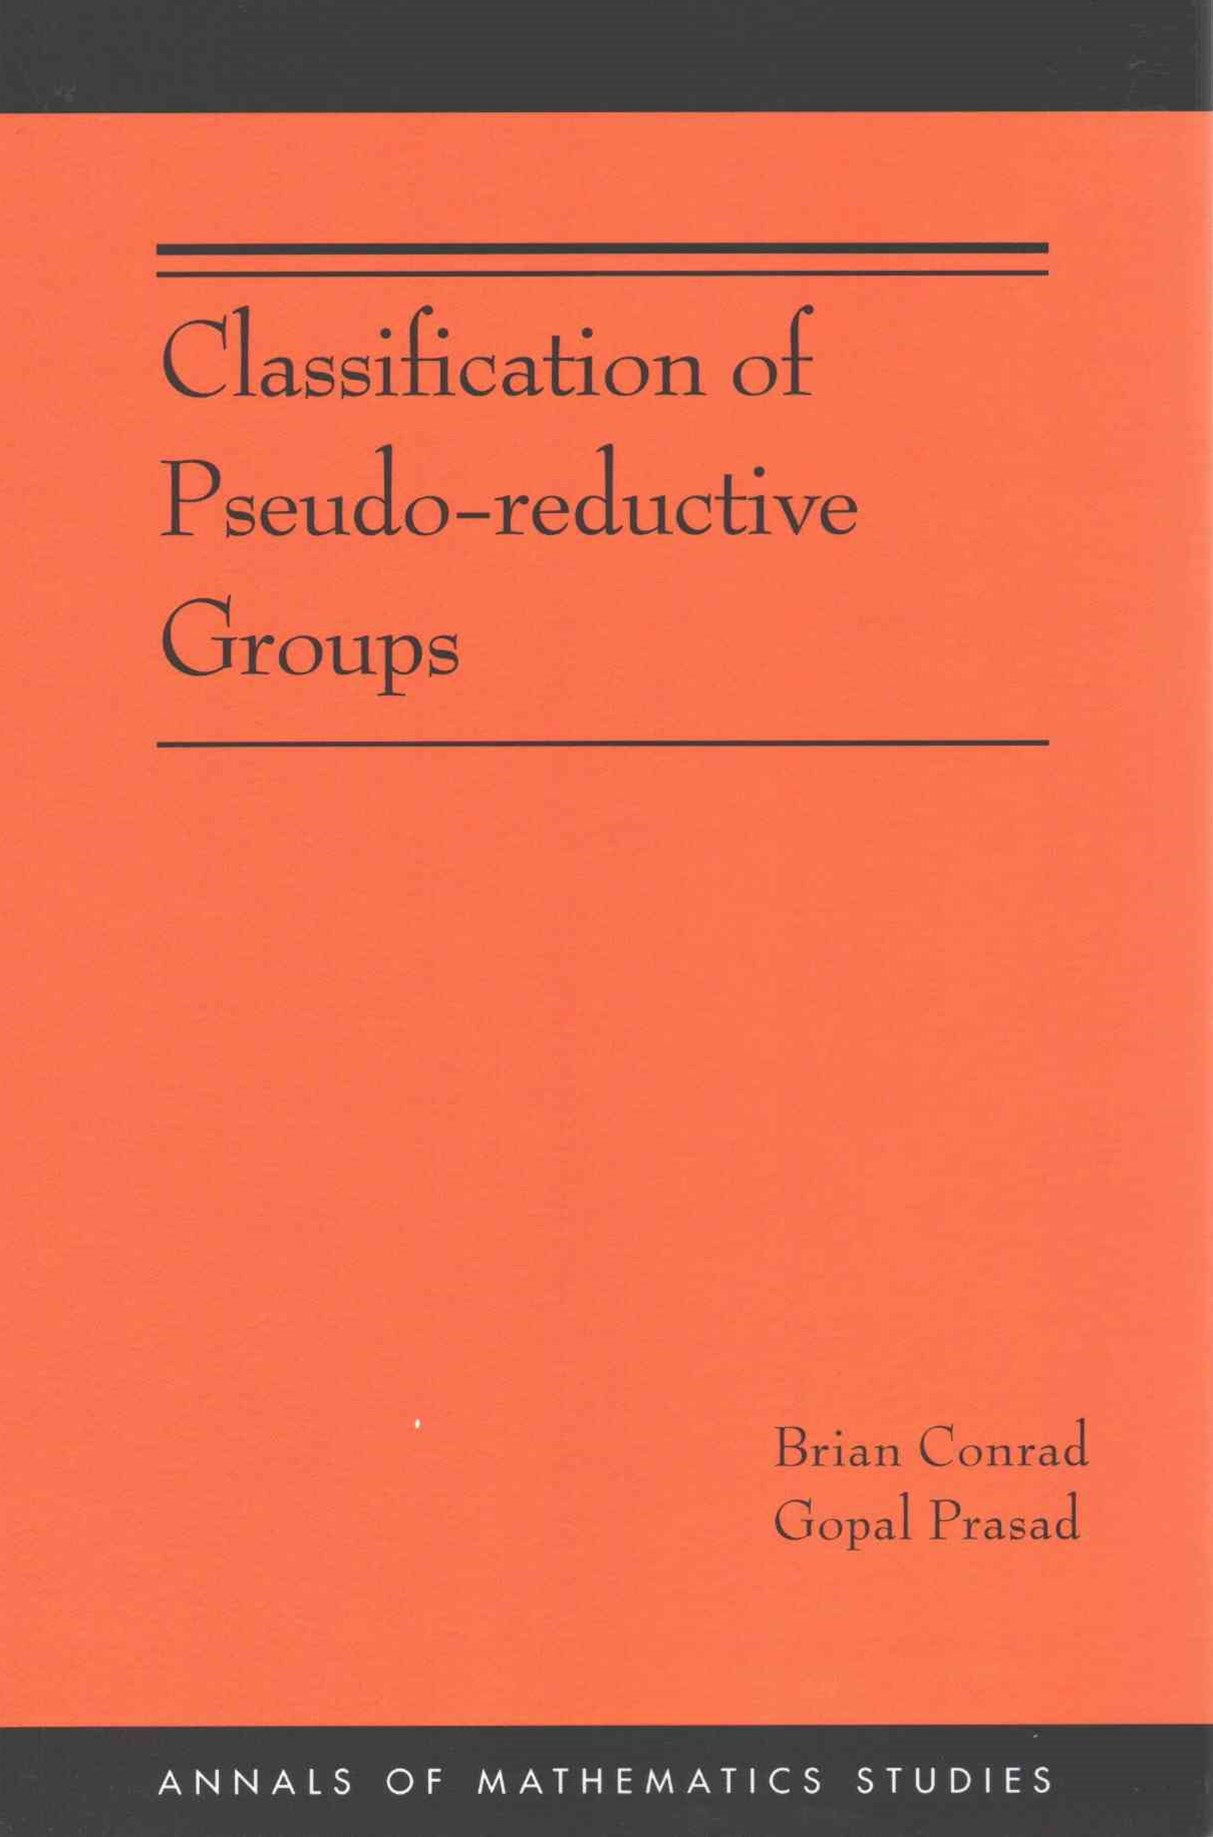 Classification of Pseudo-Reductive Groups